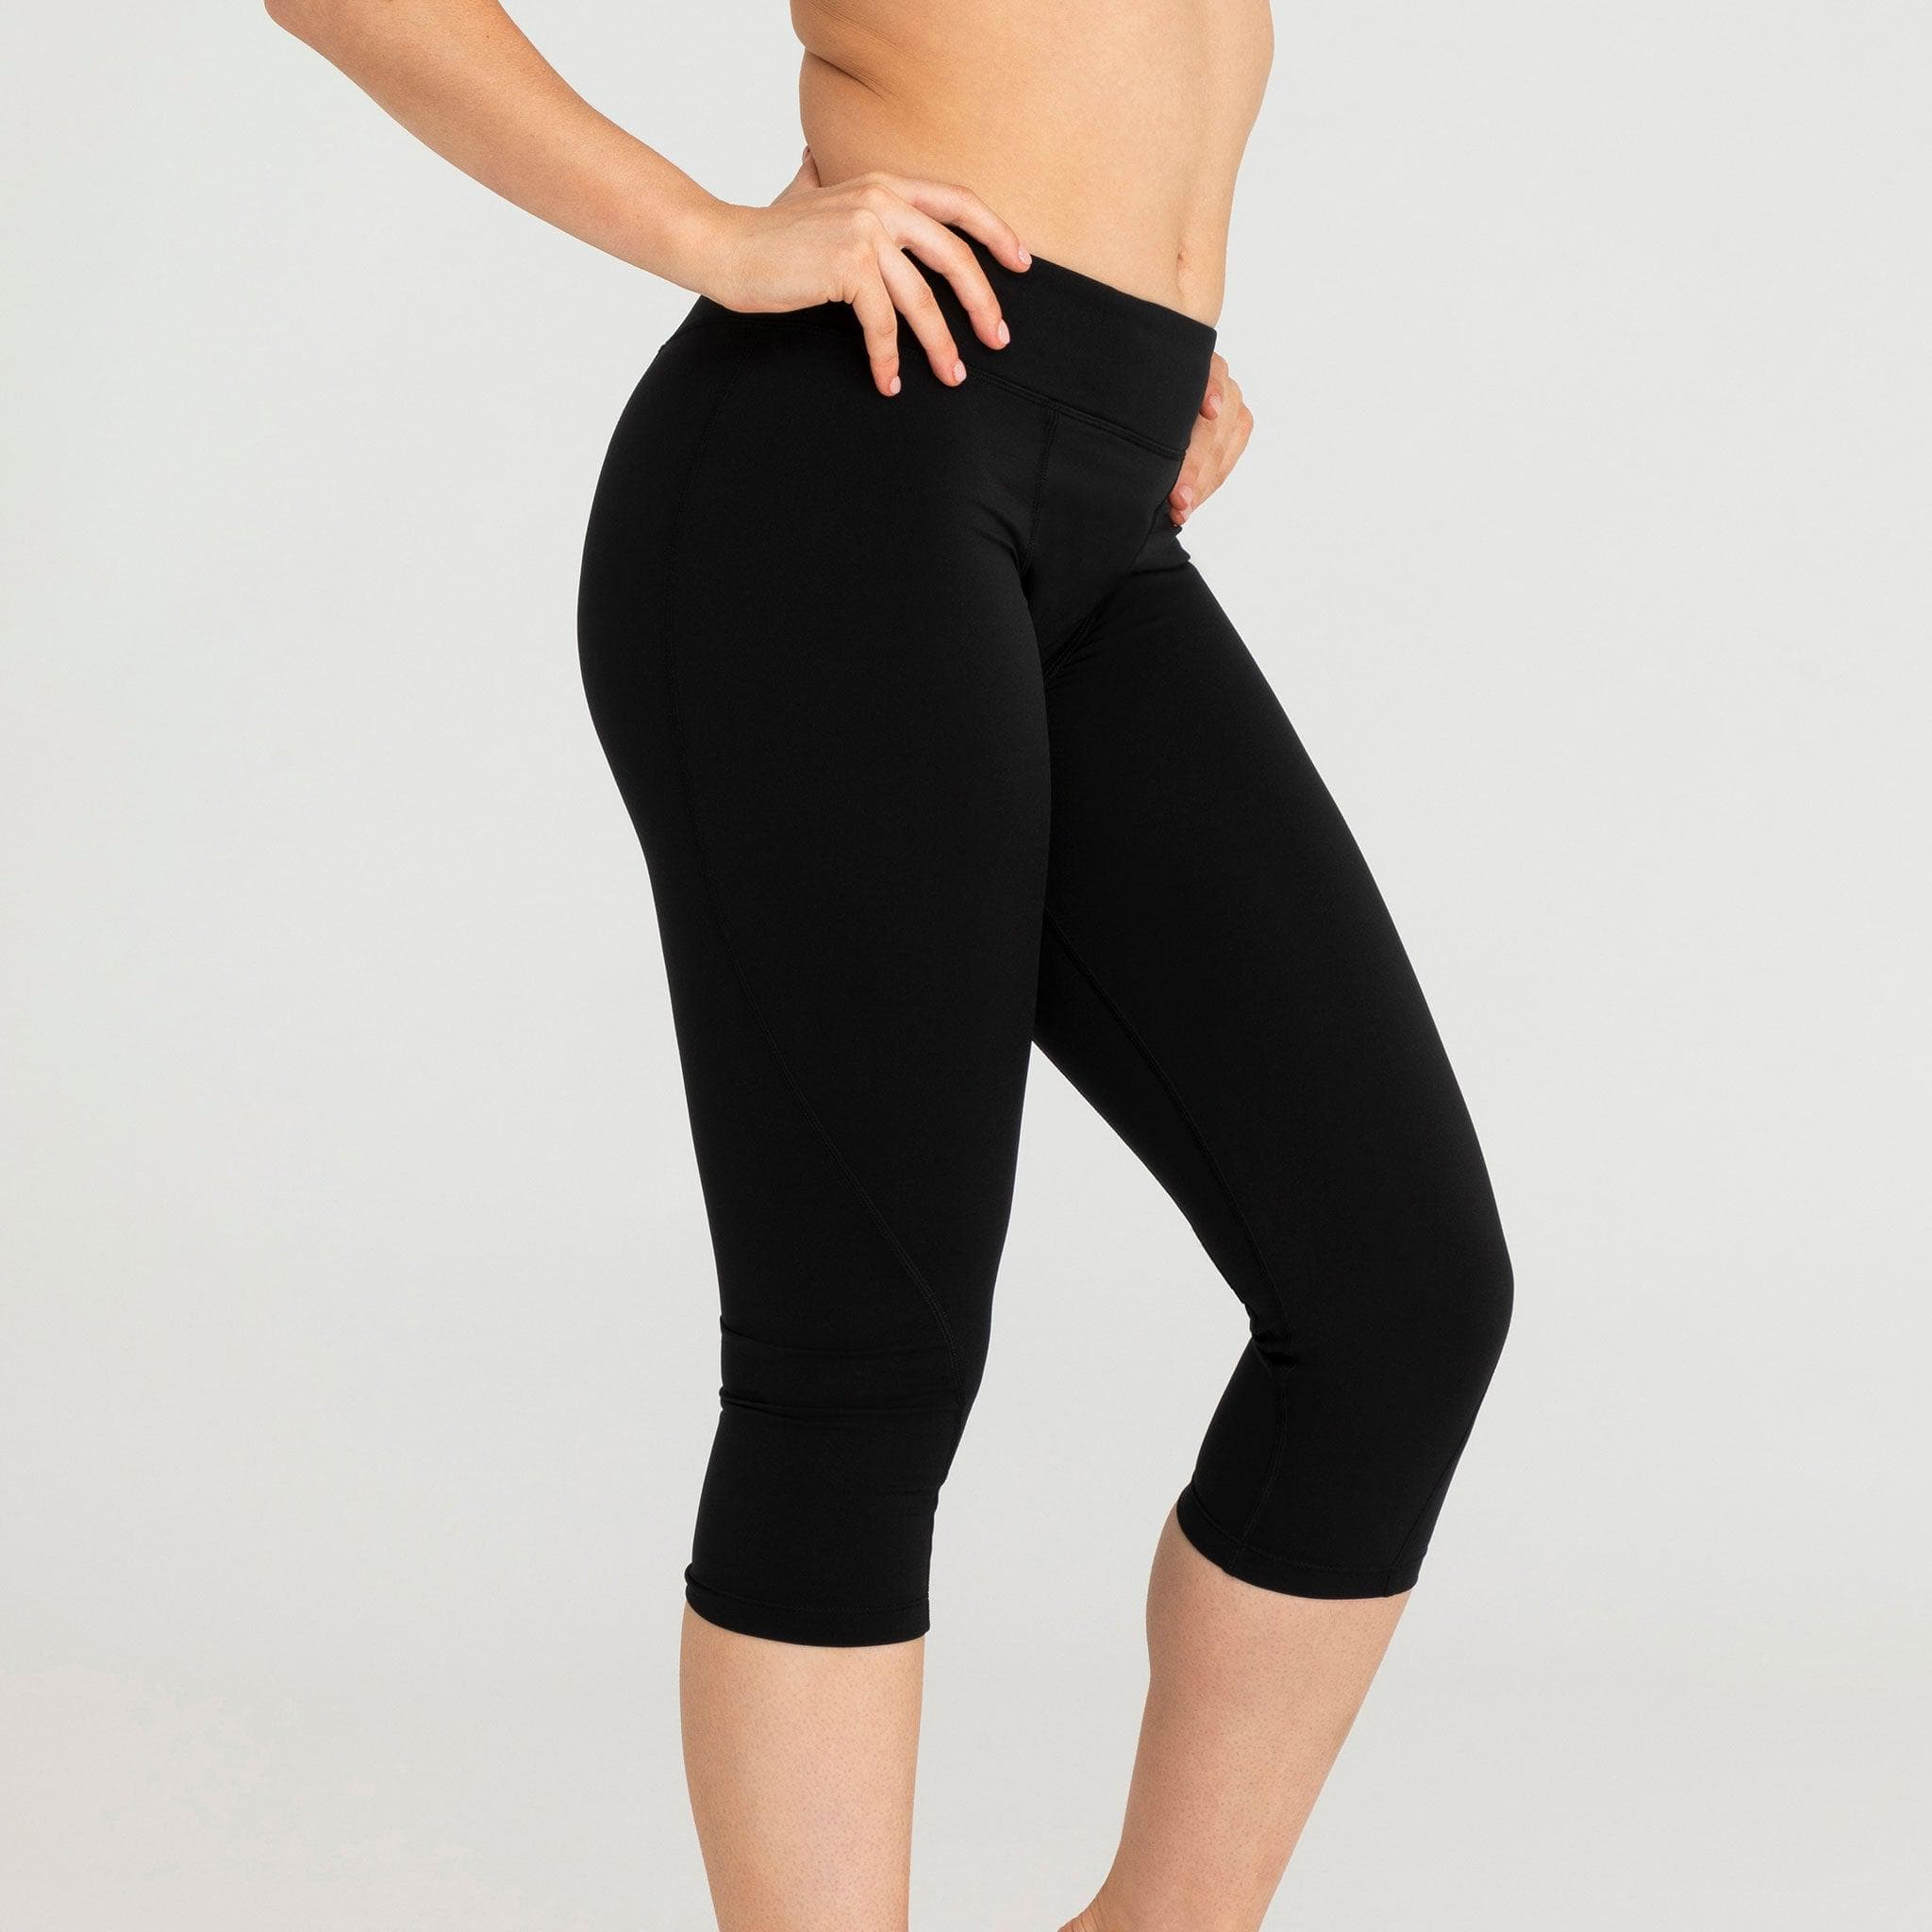 Modibodi Active Legging Black Light-Moderate |ModelName:Tiffany S/10AU